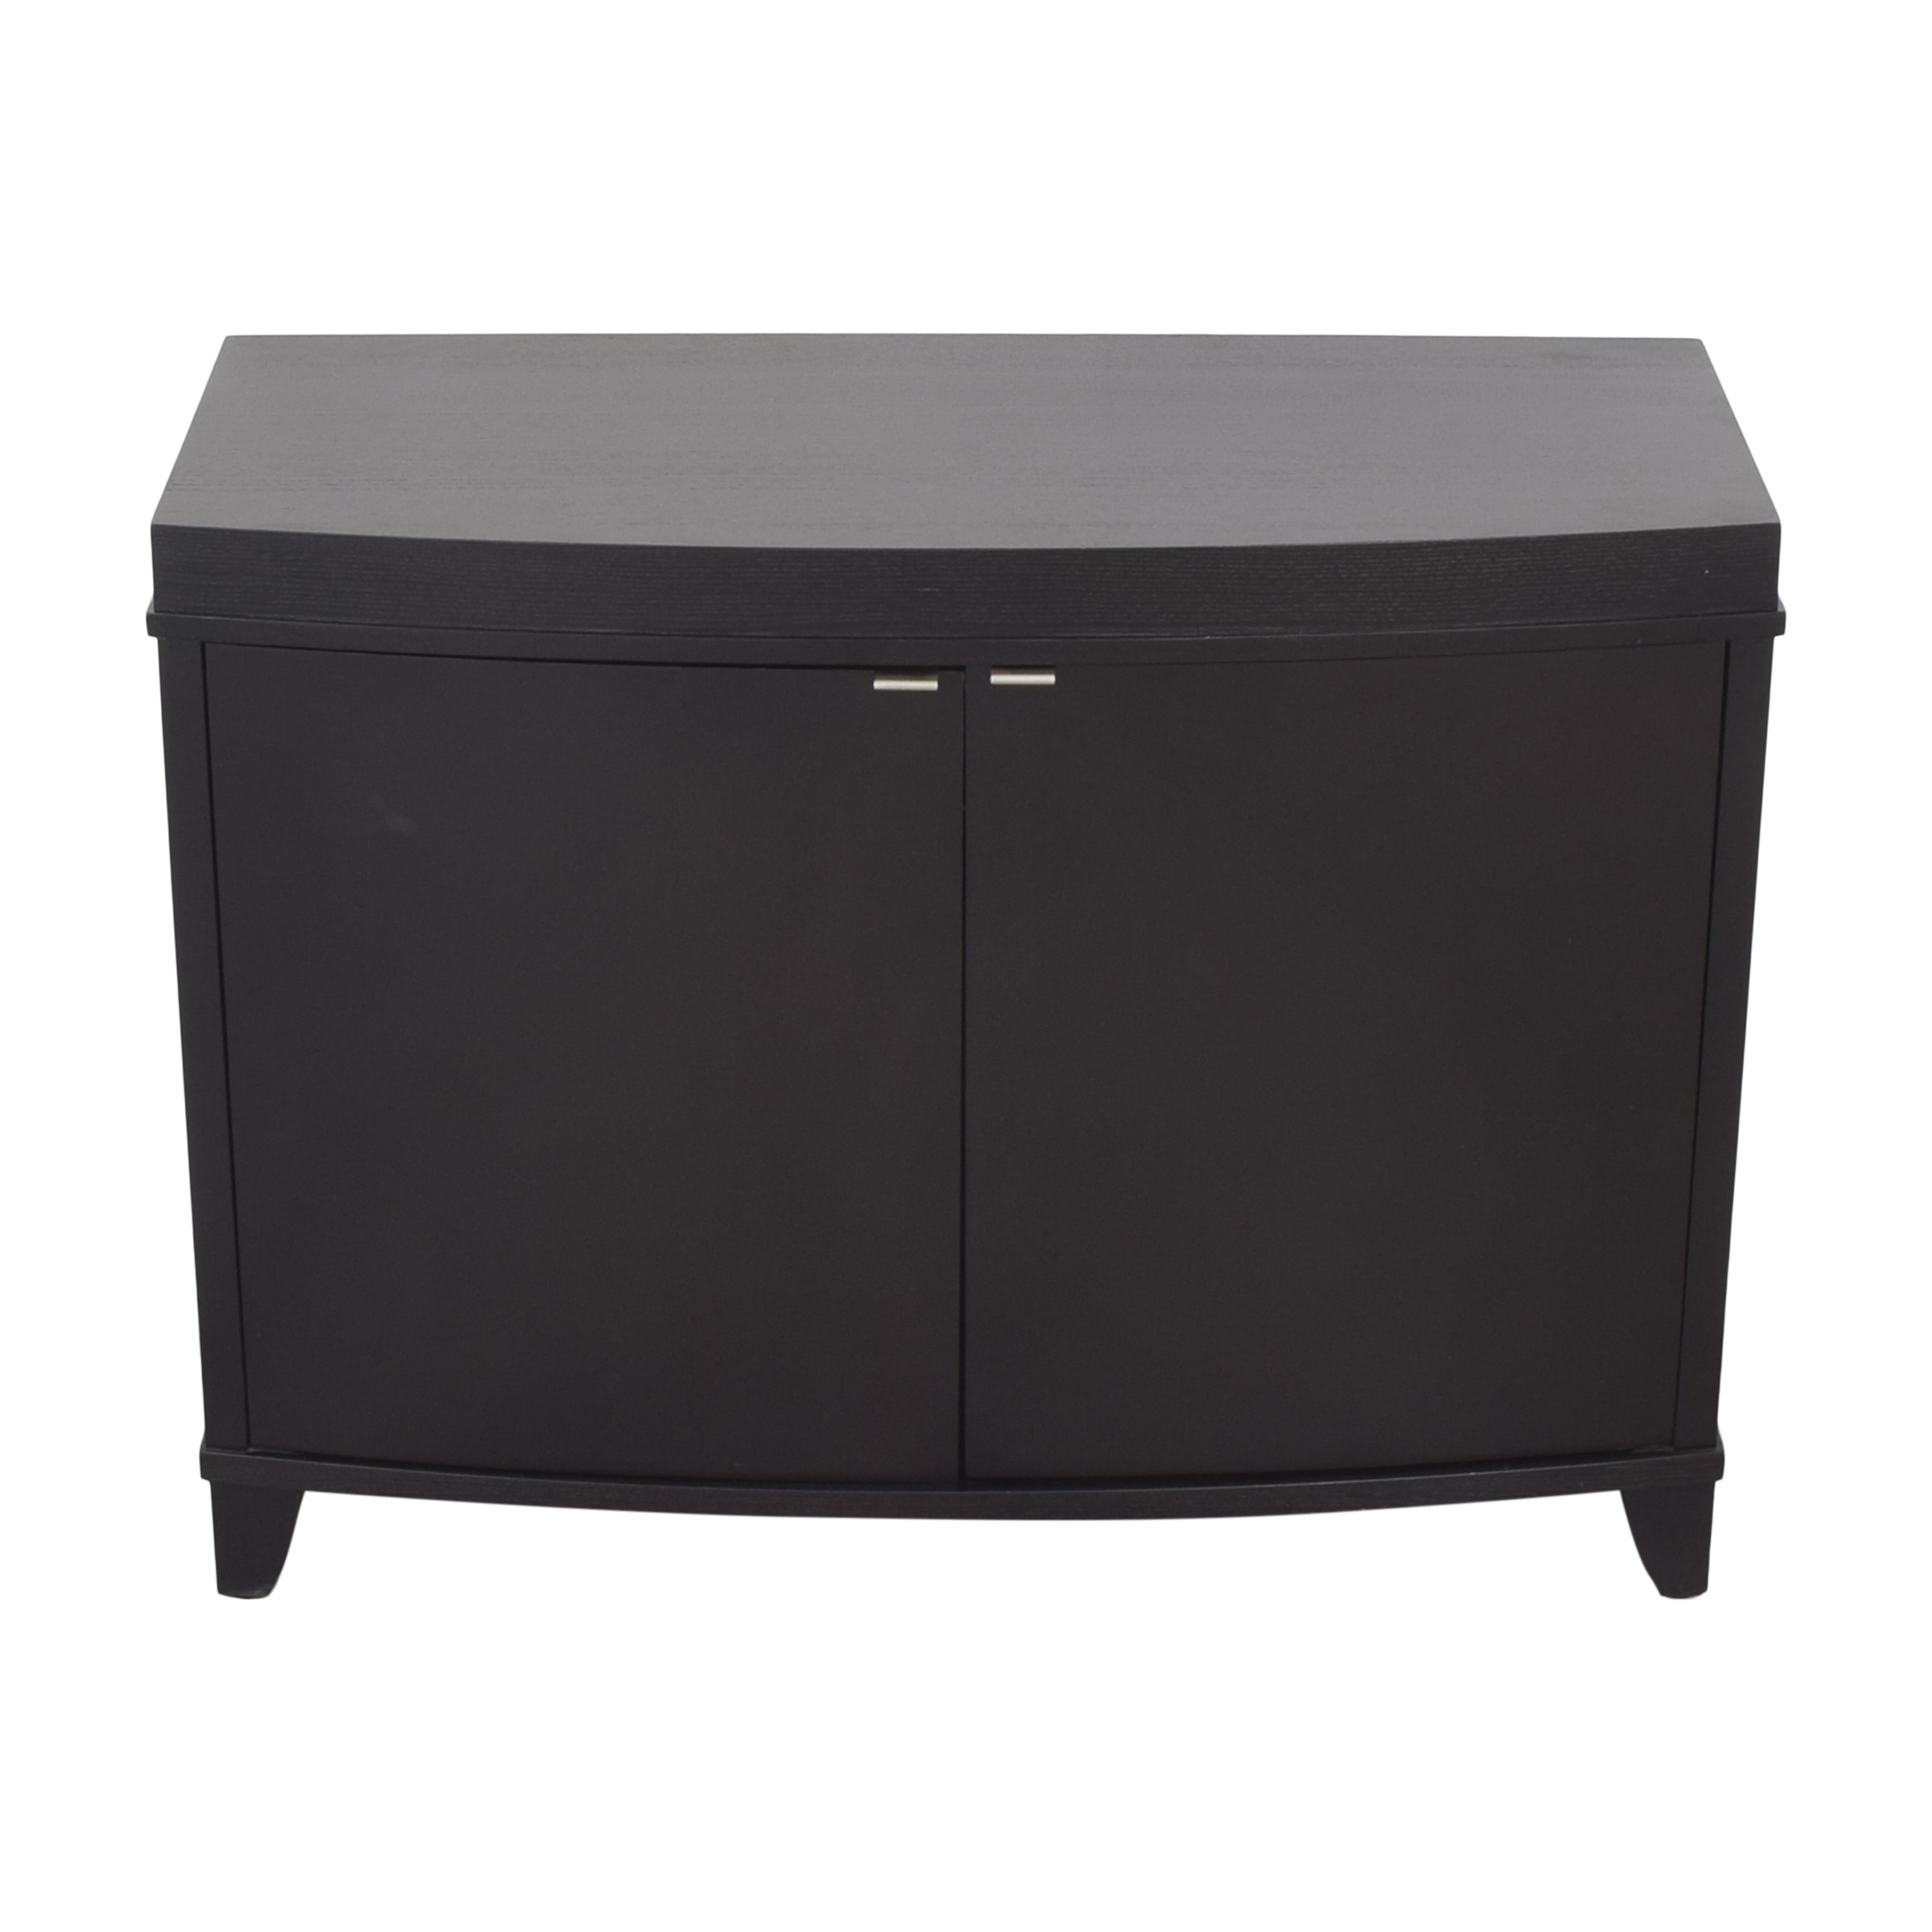 Crate & Barrel Crate & Barrel Bar Cabinet with Wine and Glass Storage Storage